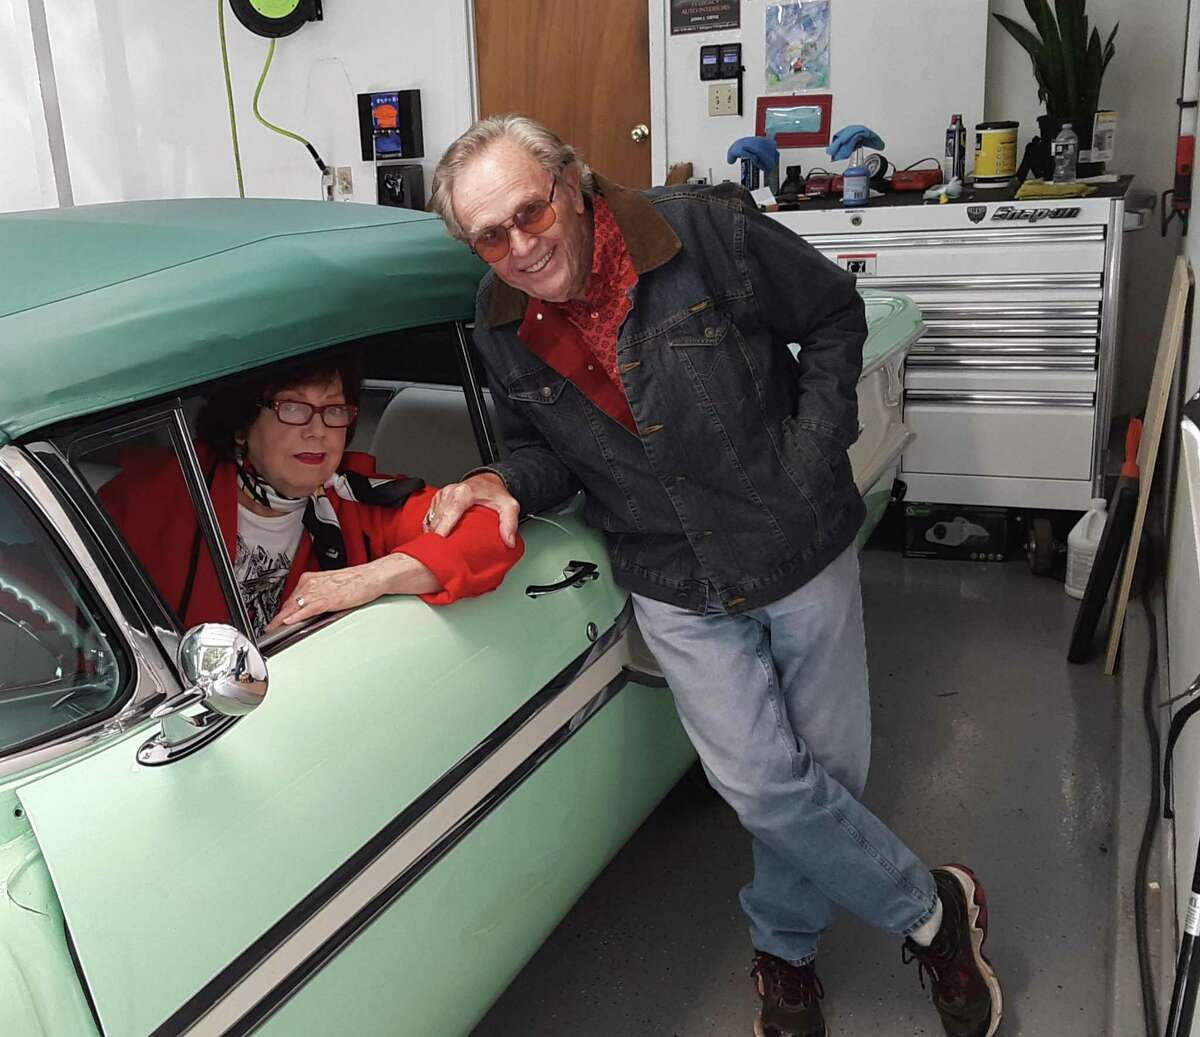 C.D. Peterson and his wife, Odessa, in their nearly restored 1958 Pontiac Chieftain convertible.